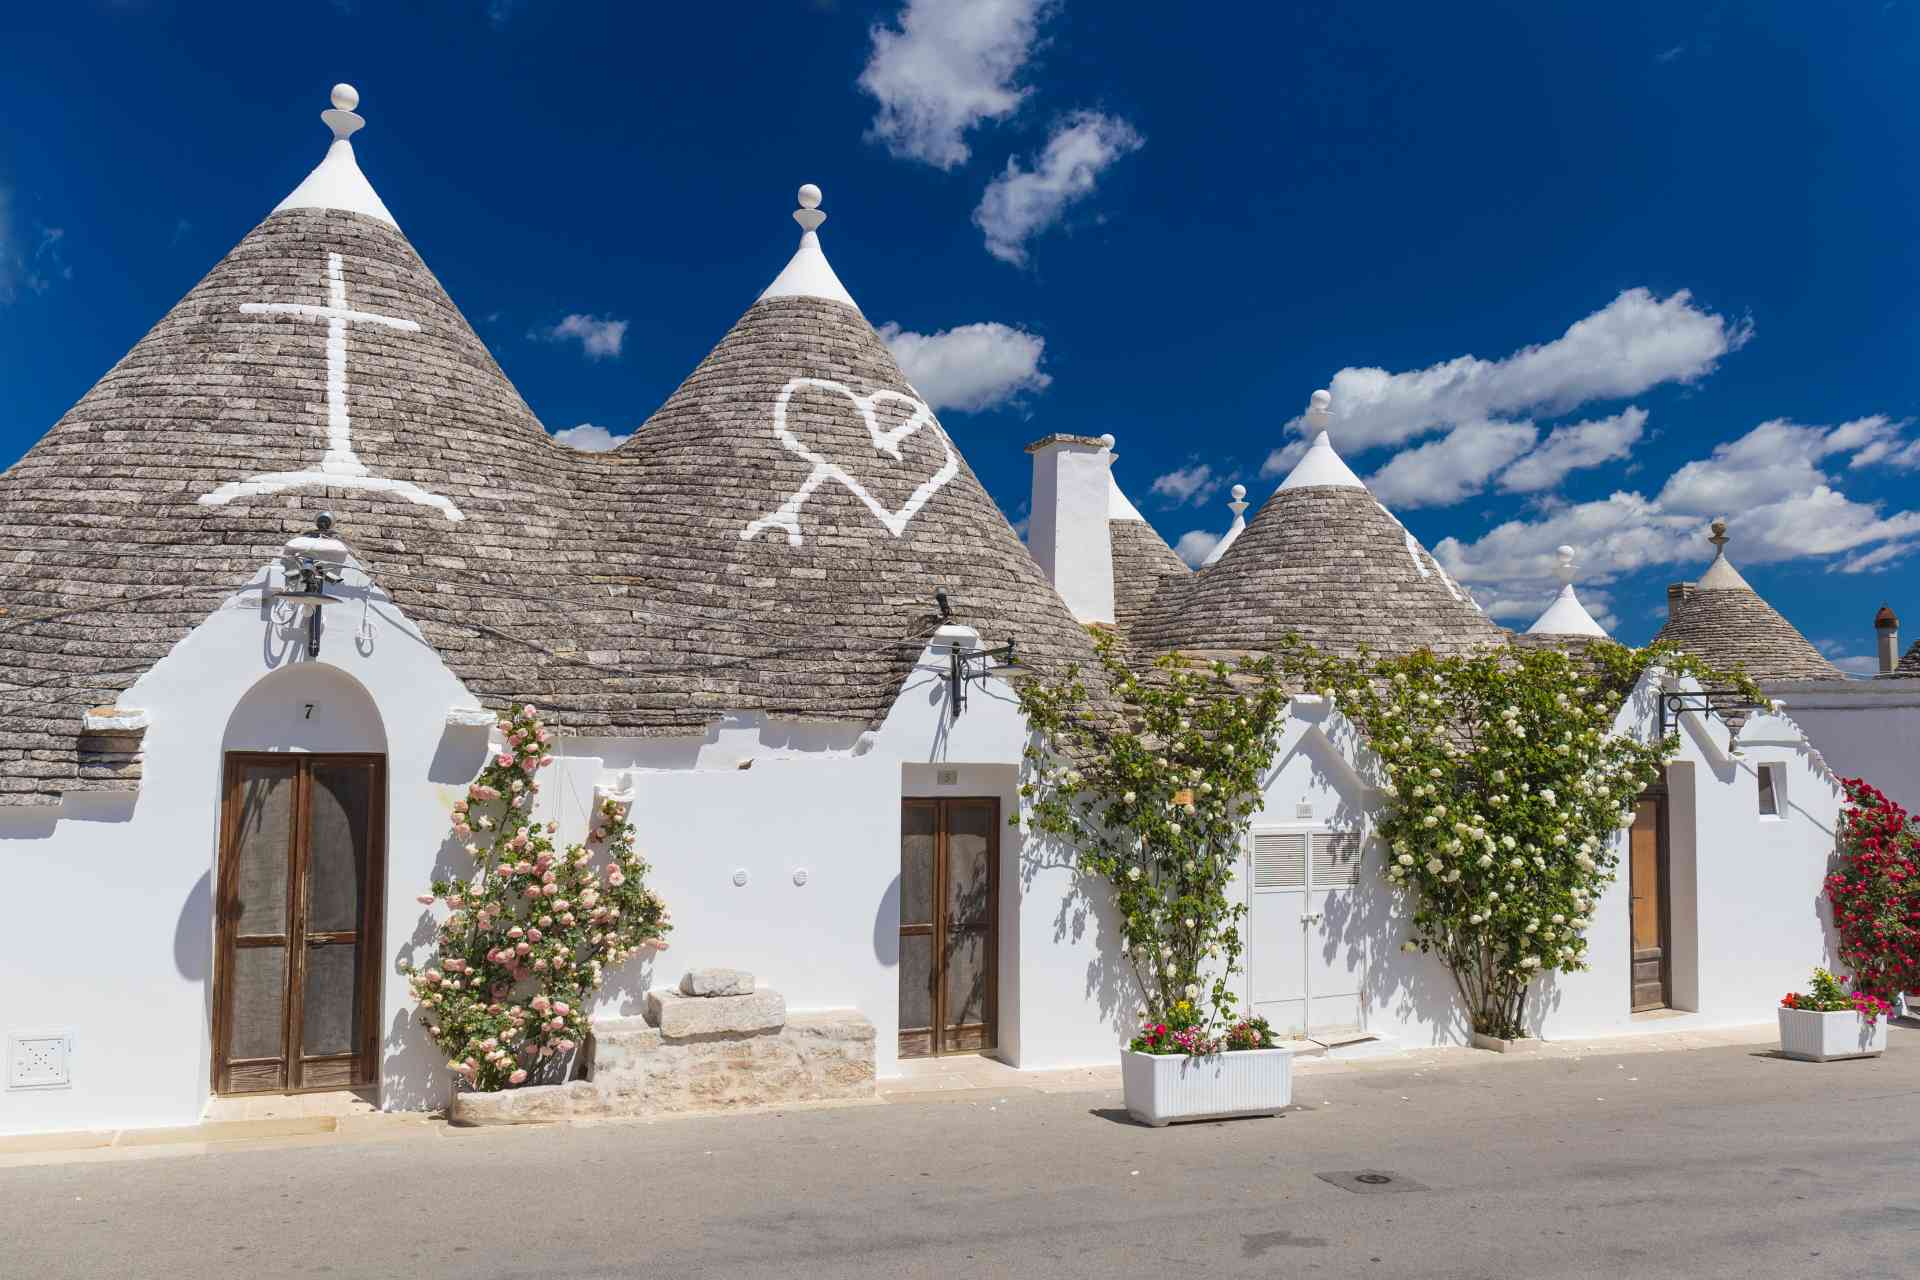 Trulli in Alberobello, Italy from Adobe Stock